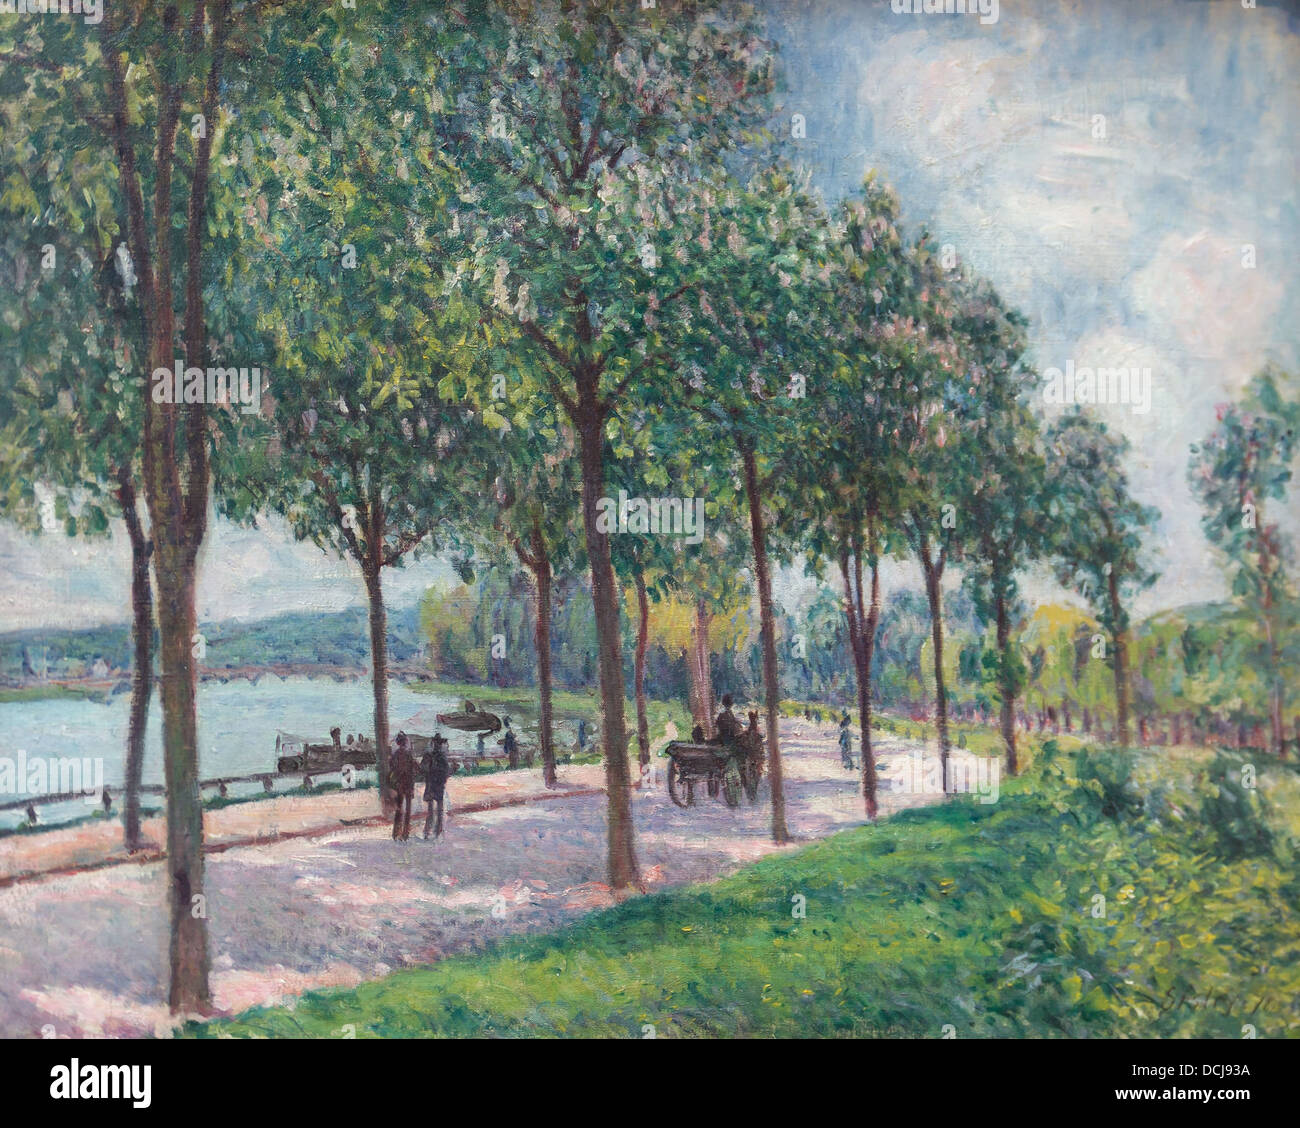 19th century  -  Chestnut Trees Alley - Alfred Sisley (1878) - Metropolitan Museum of Art - New York - Oil on Canvas - Stock Image